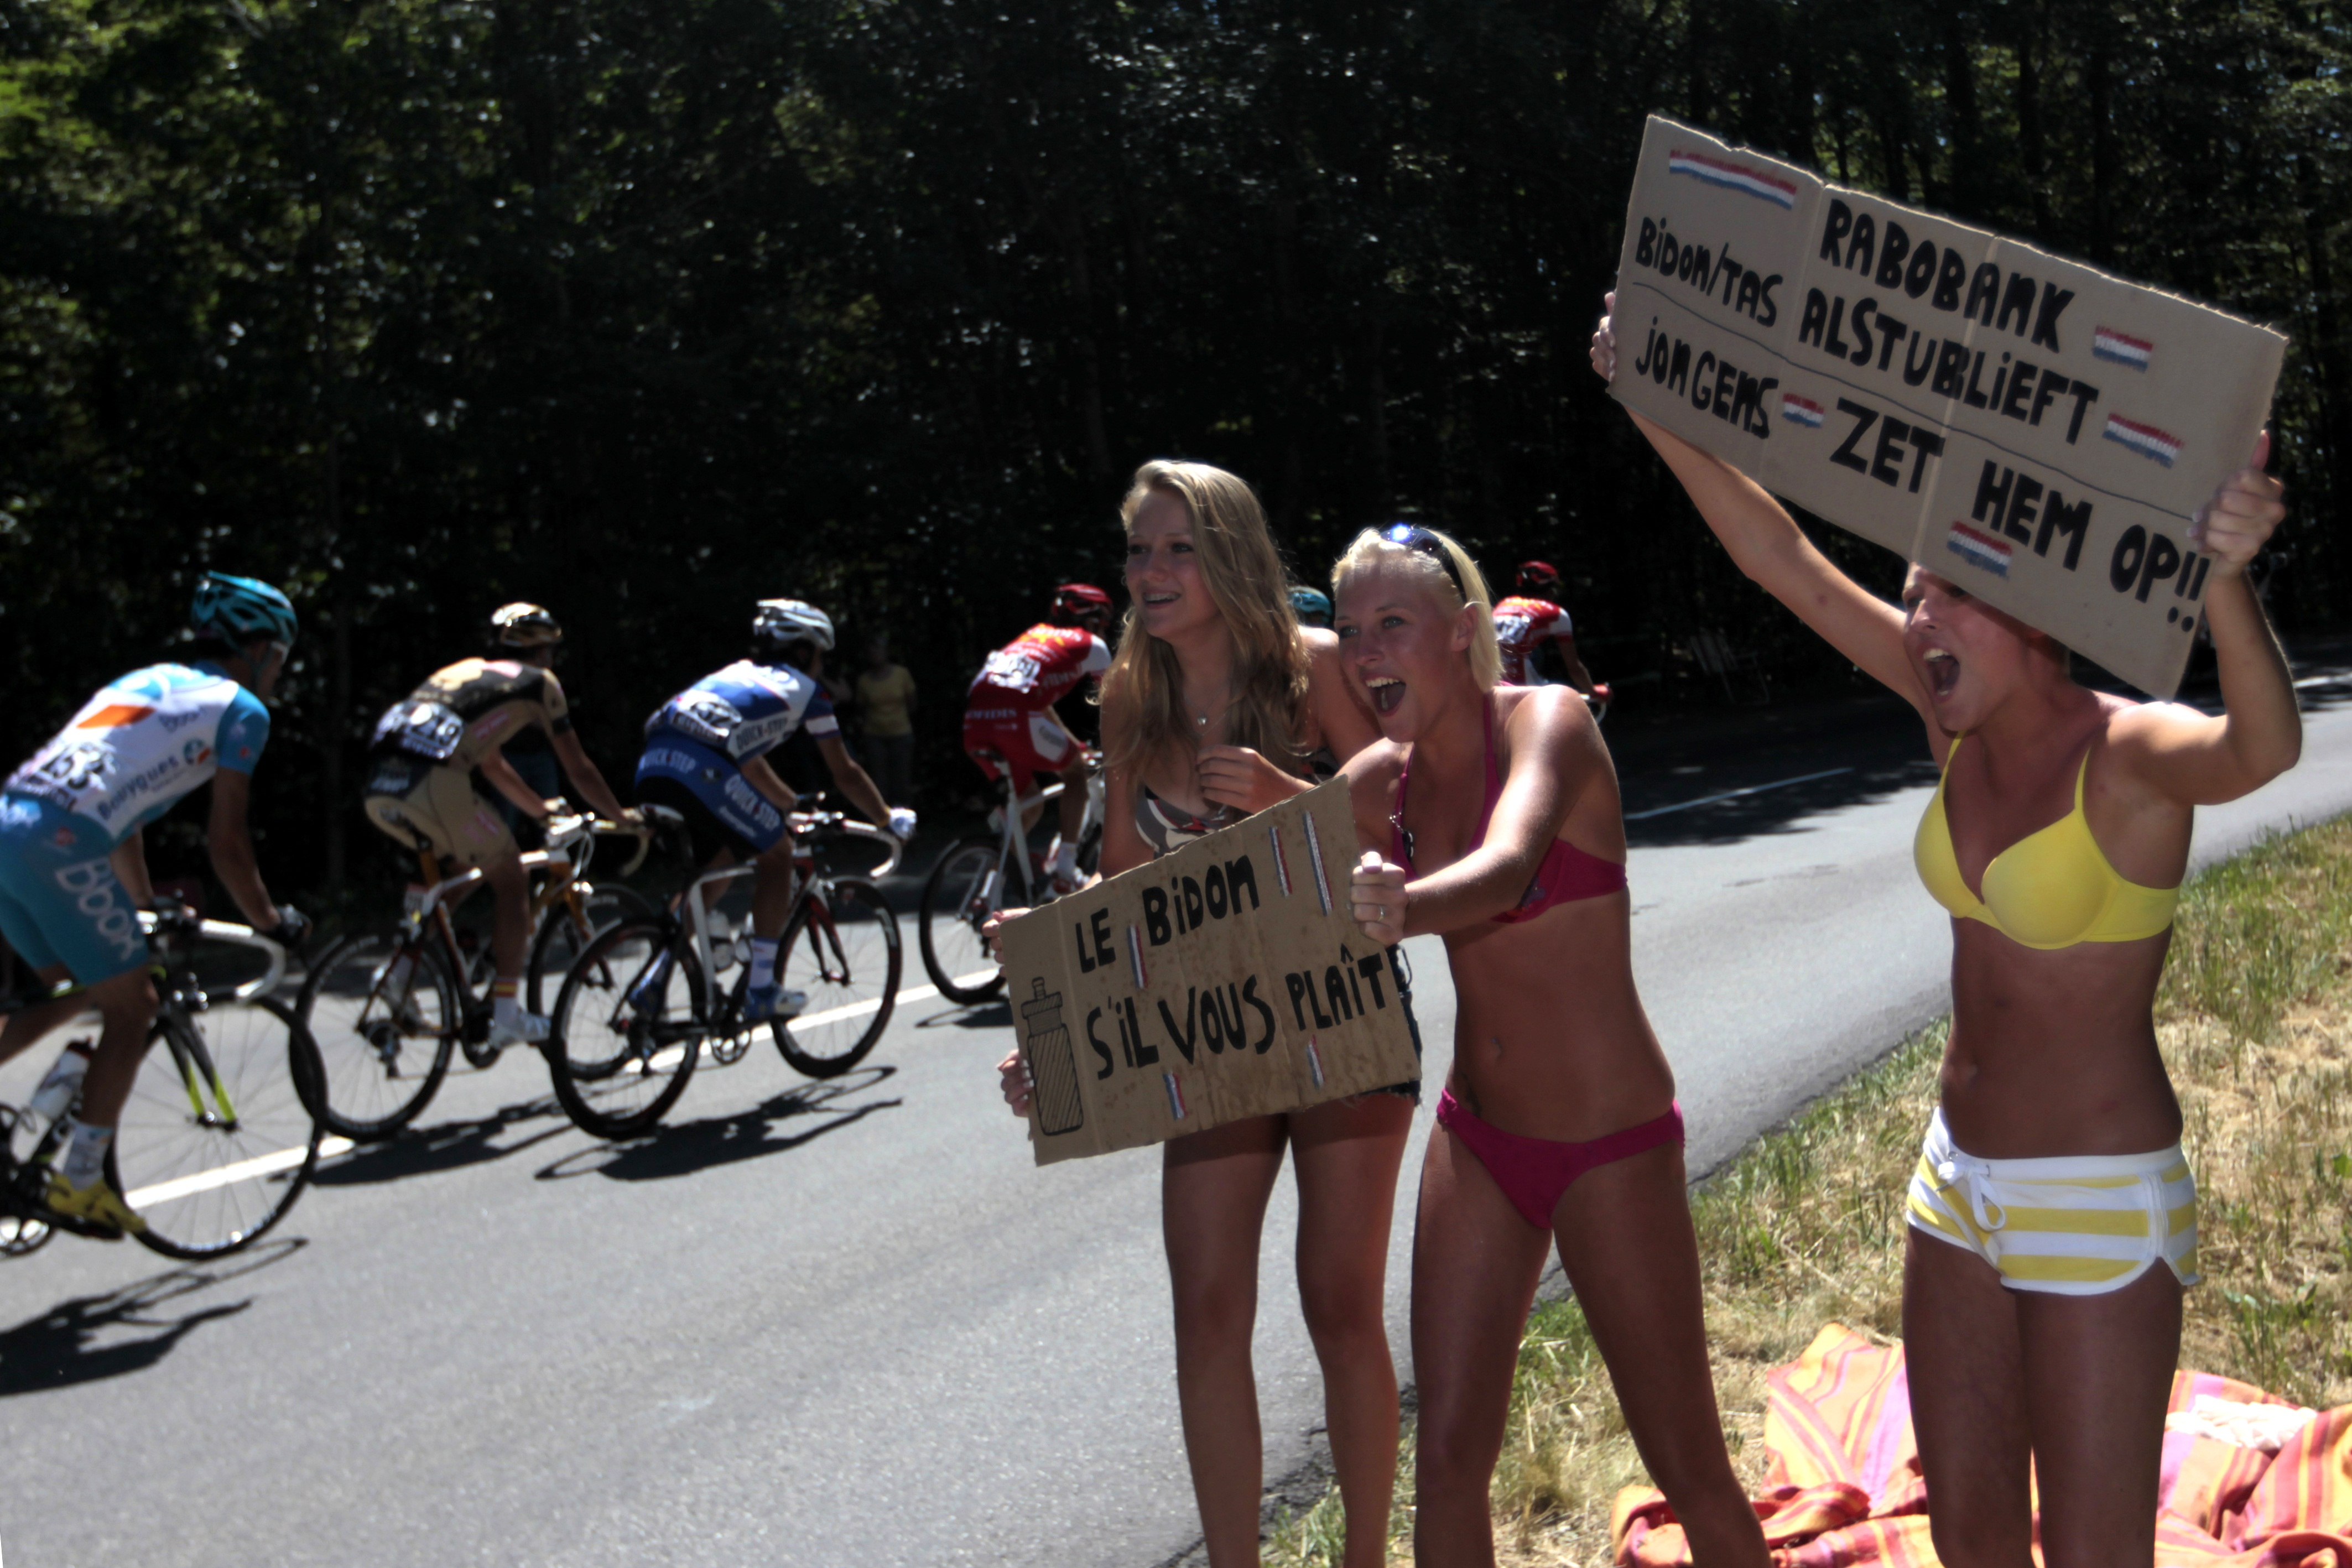 17 chicks in underwear - crazy tour de france fans